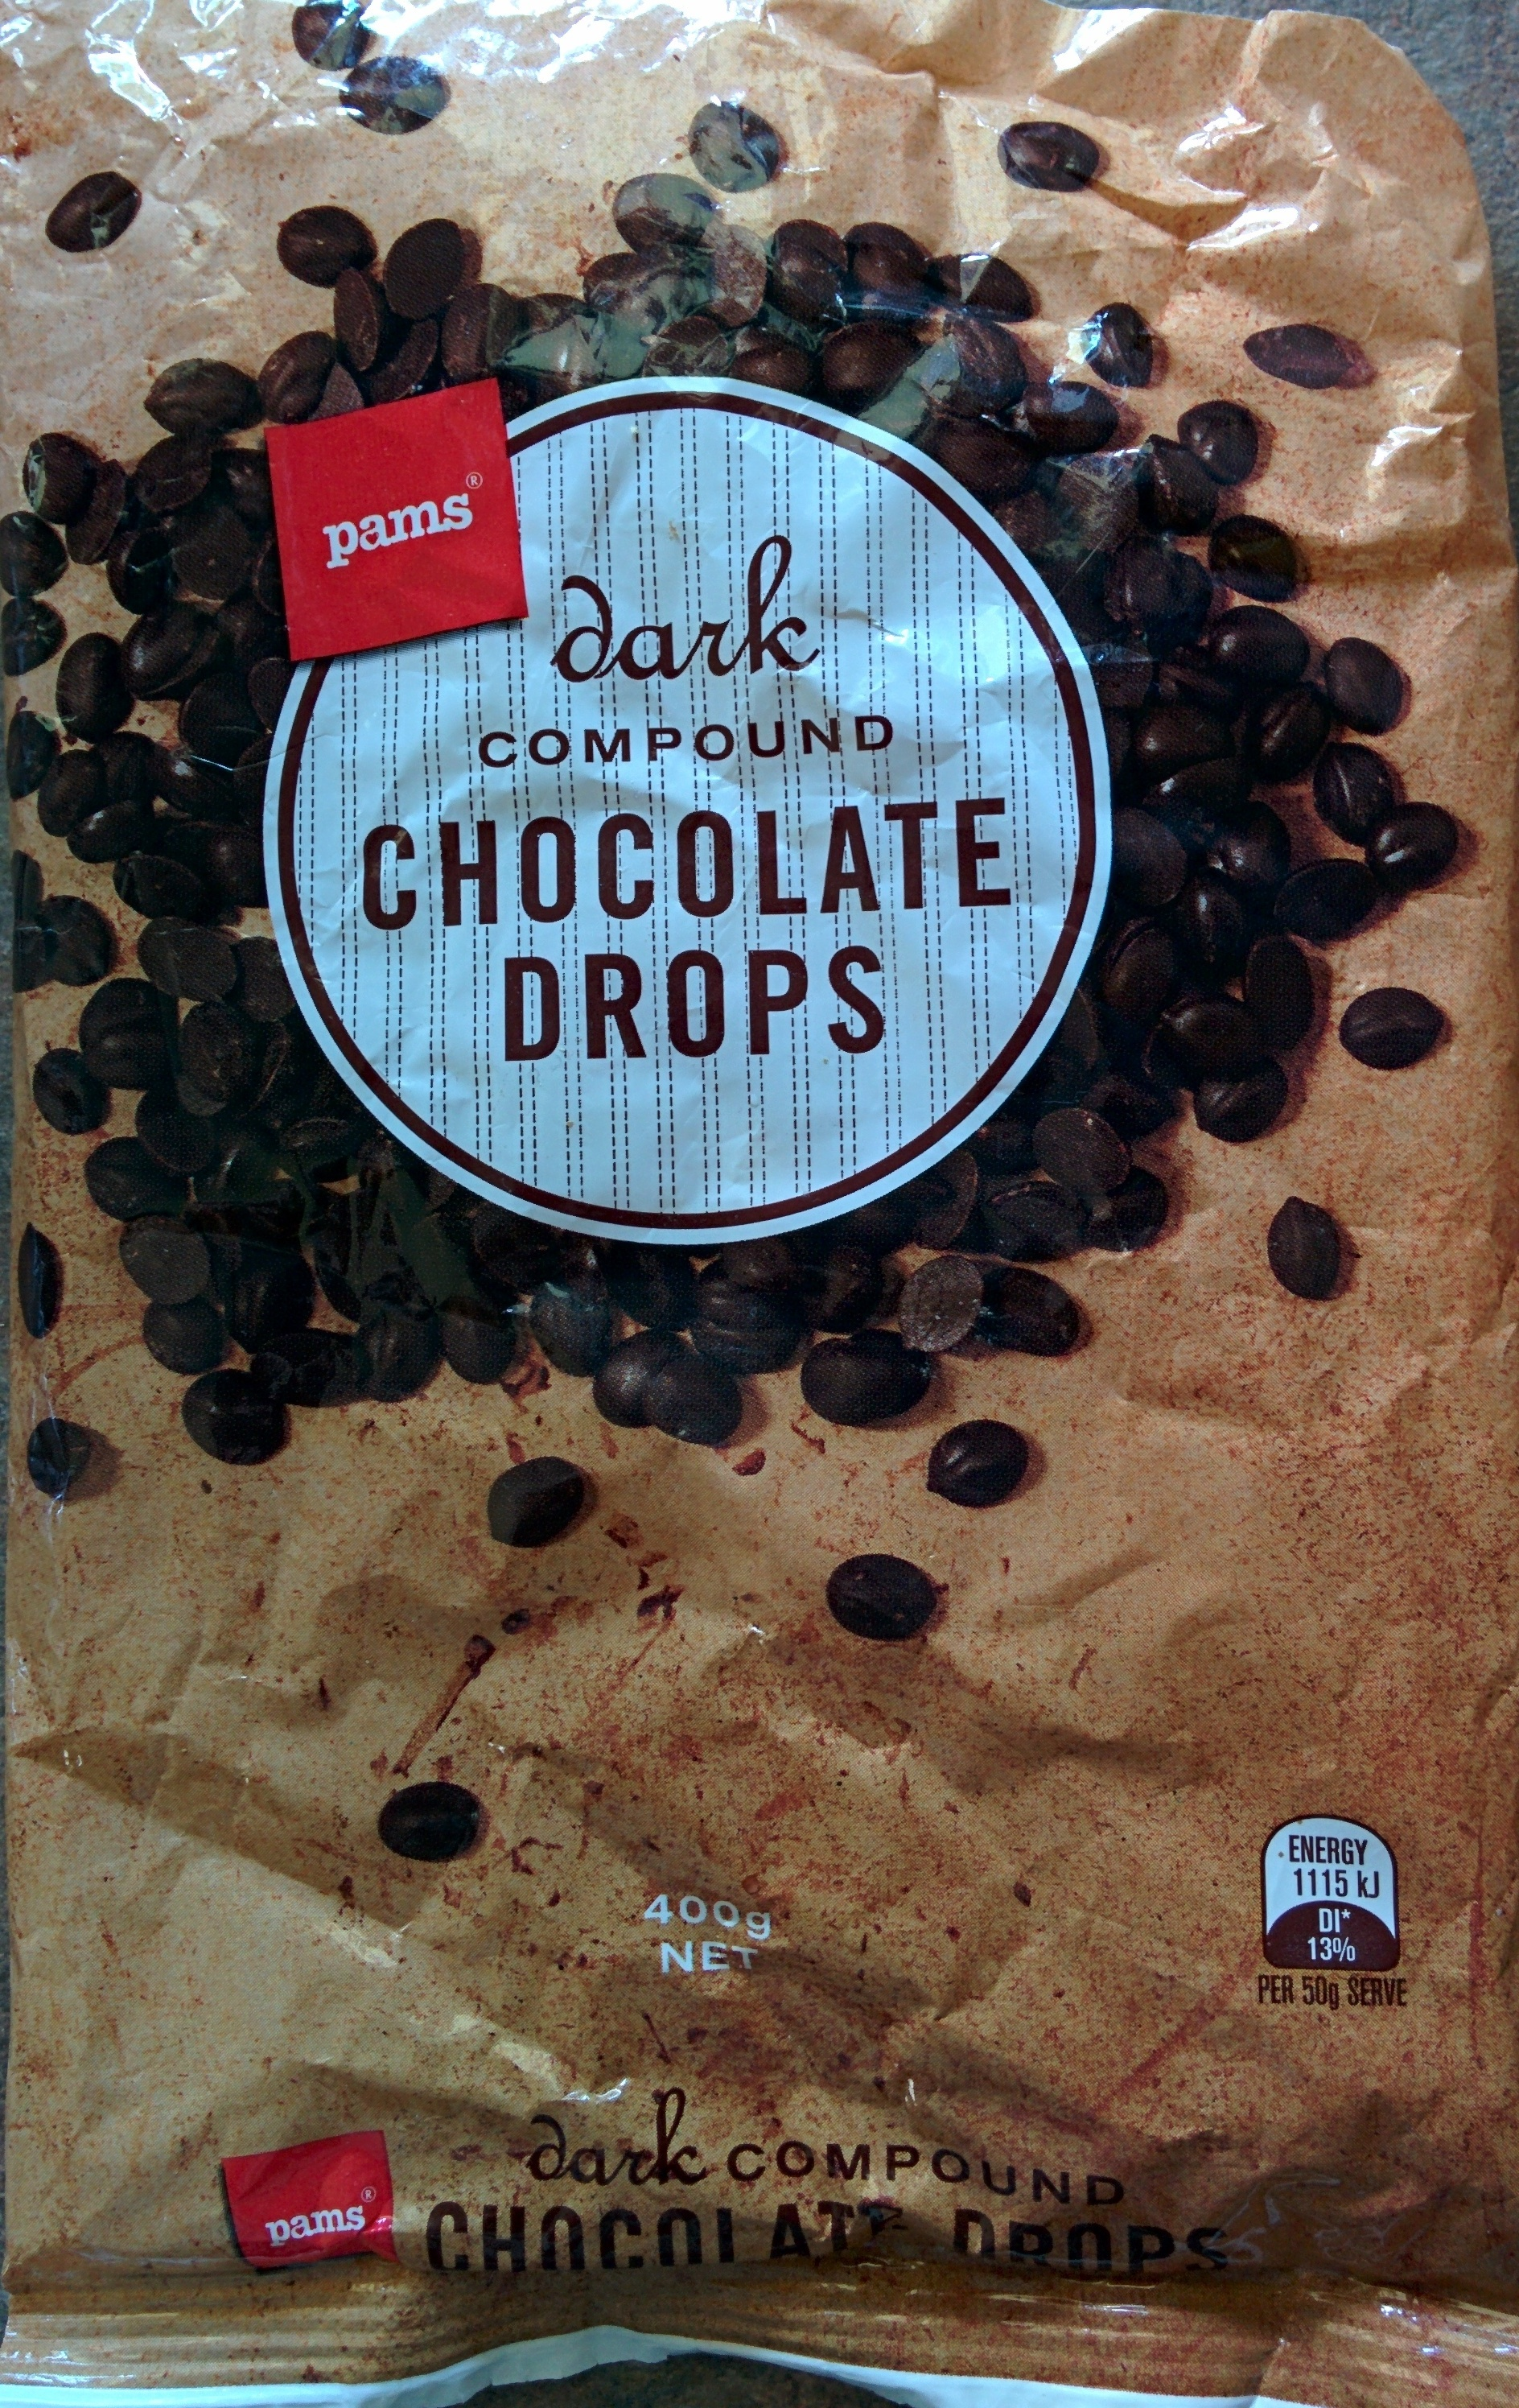 Dark Compound Chocolate Drops - Pams - 400 g